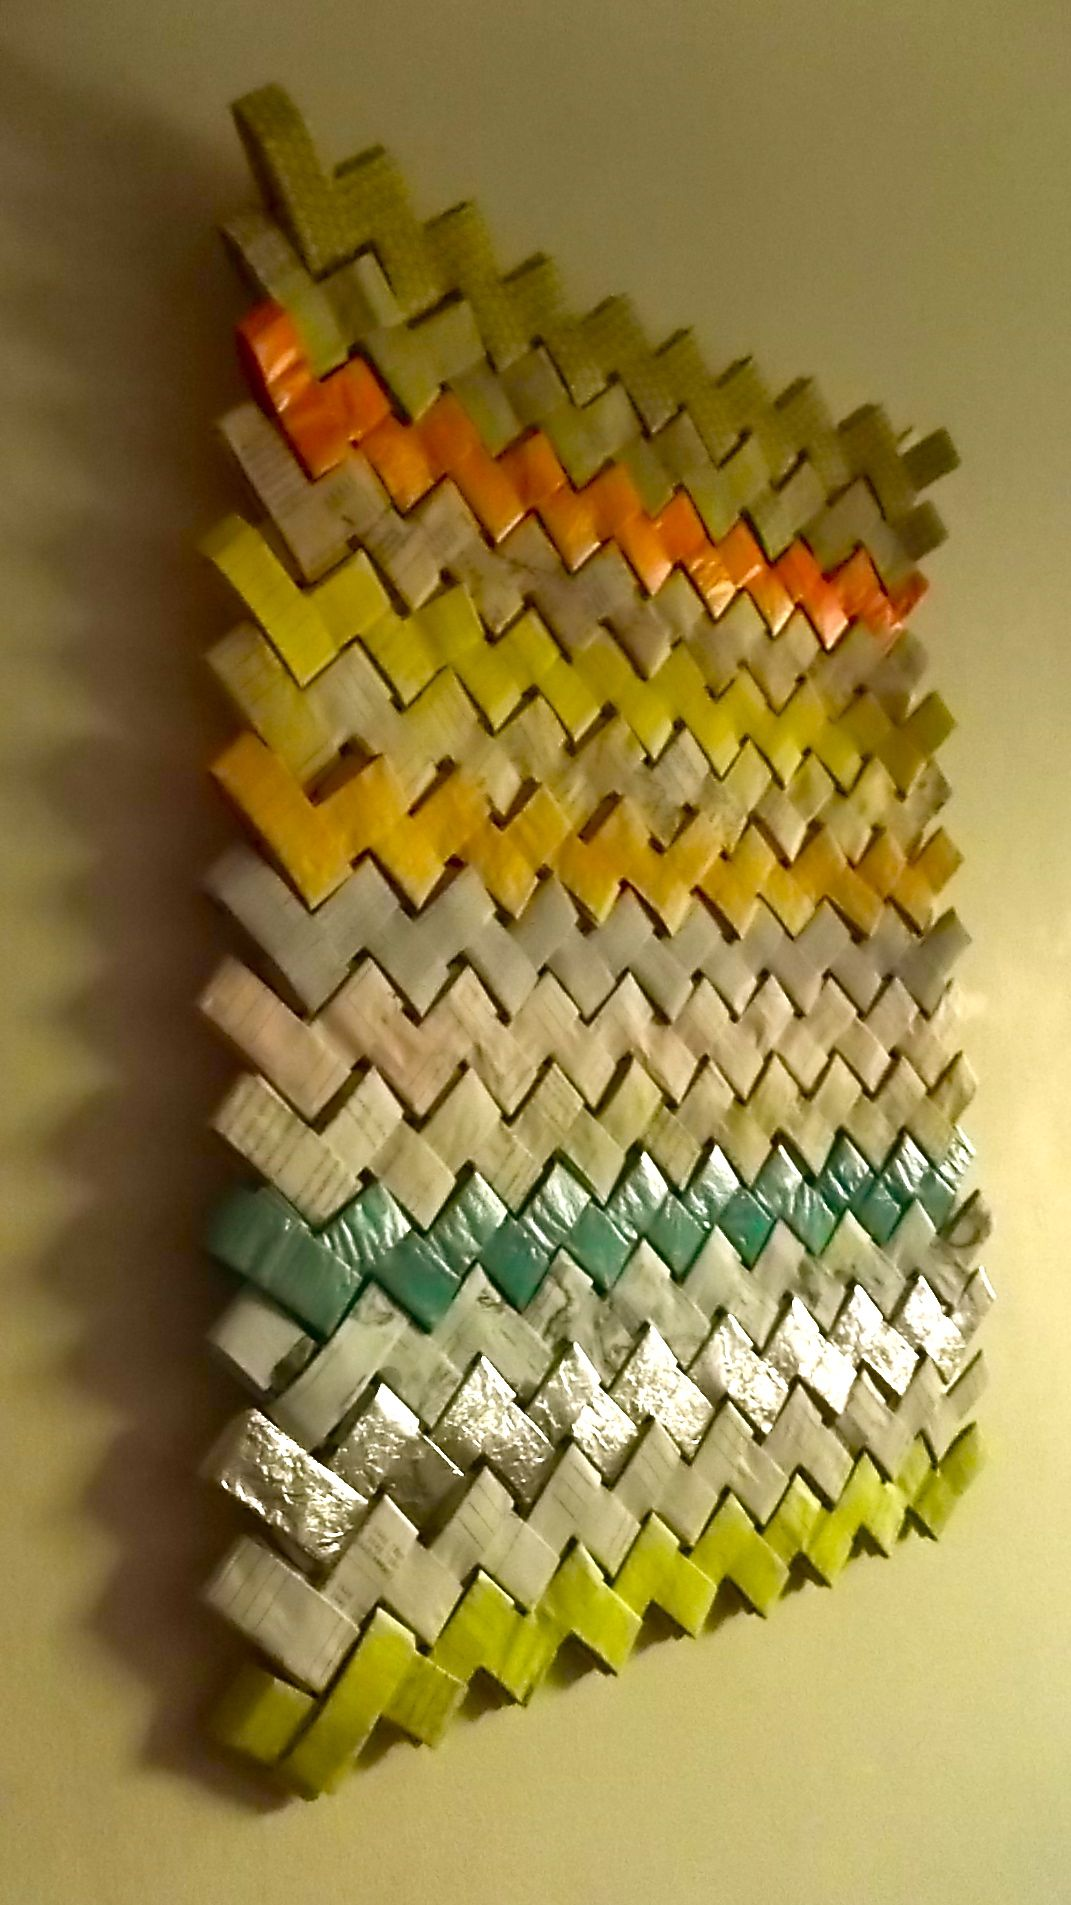 Wrapping Paper Wall Hanging (= rows of extra large gum wrapper ...